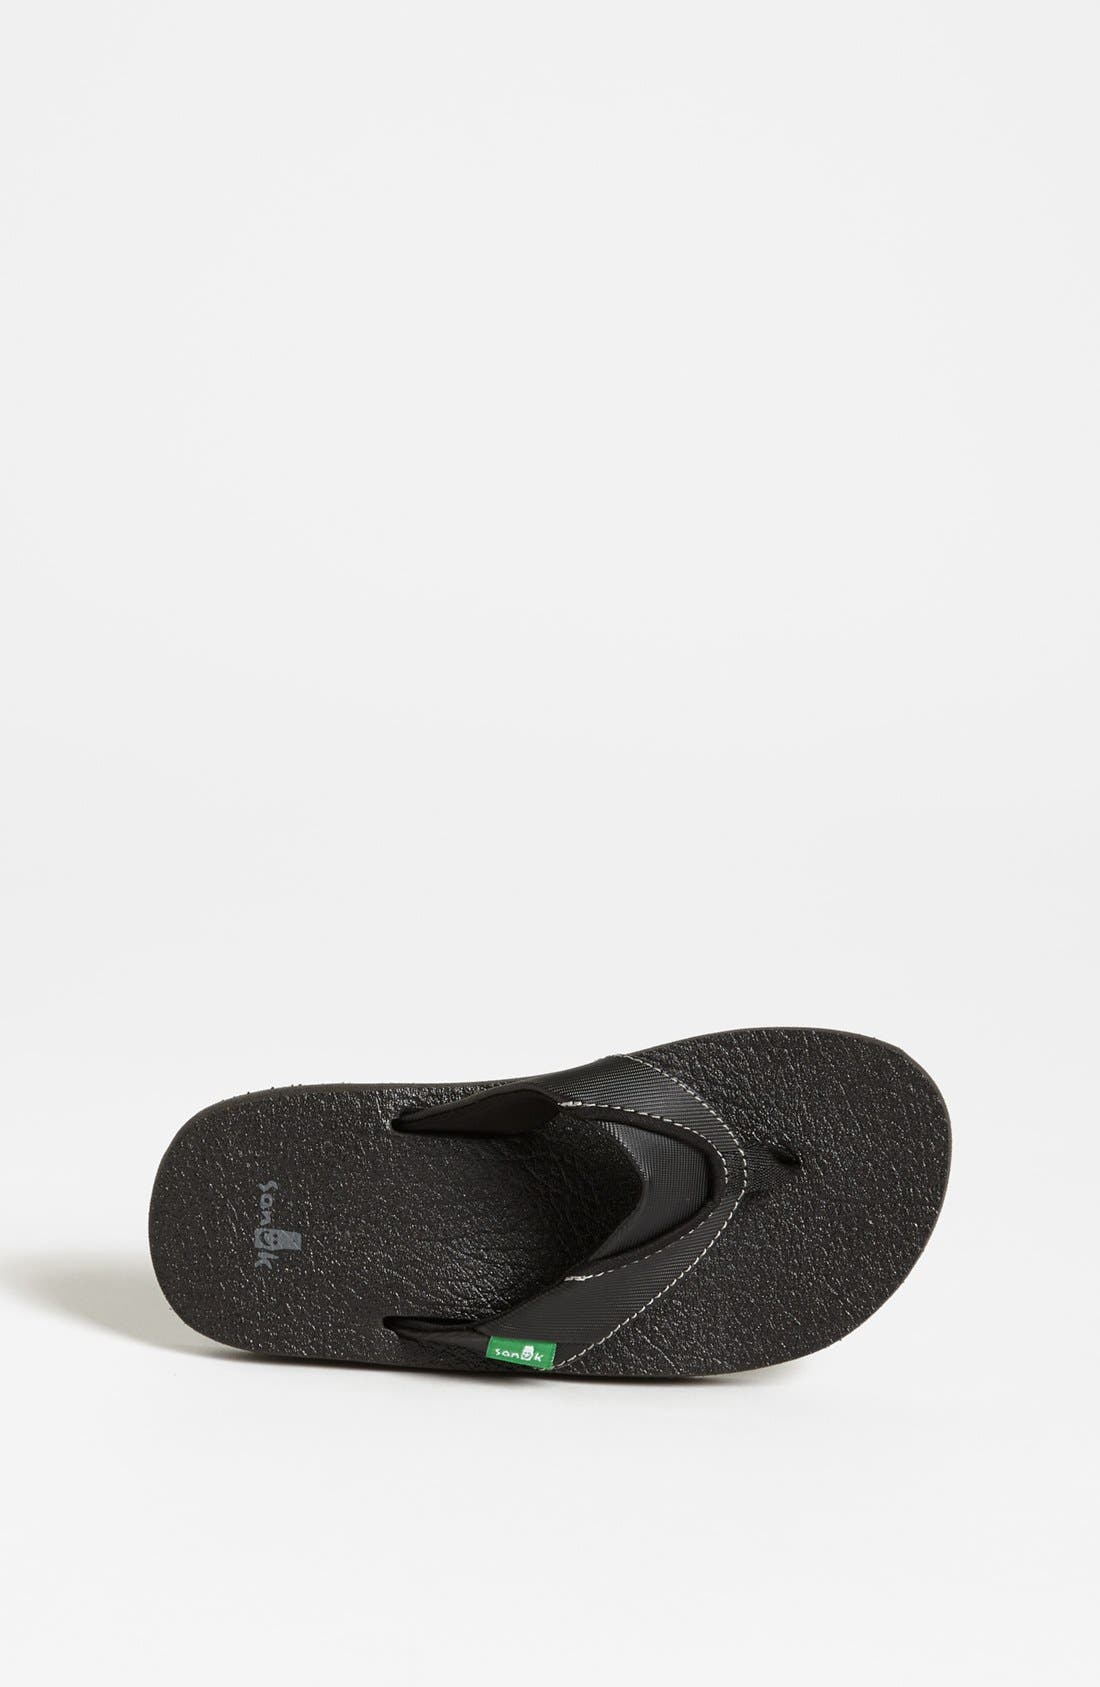 'Root Beer' Sandal,                             Alternate thumbnail 4, color,                             BLACK